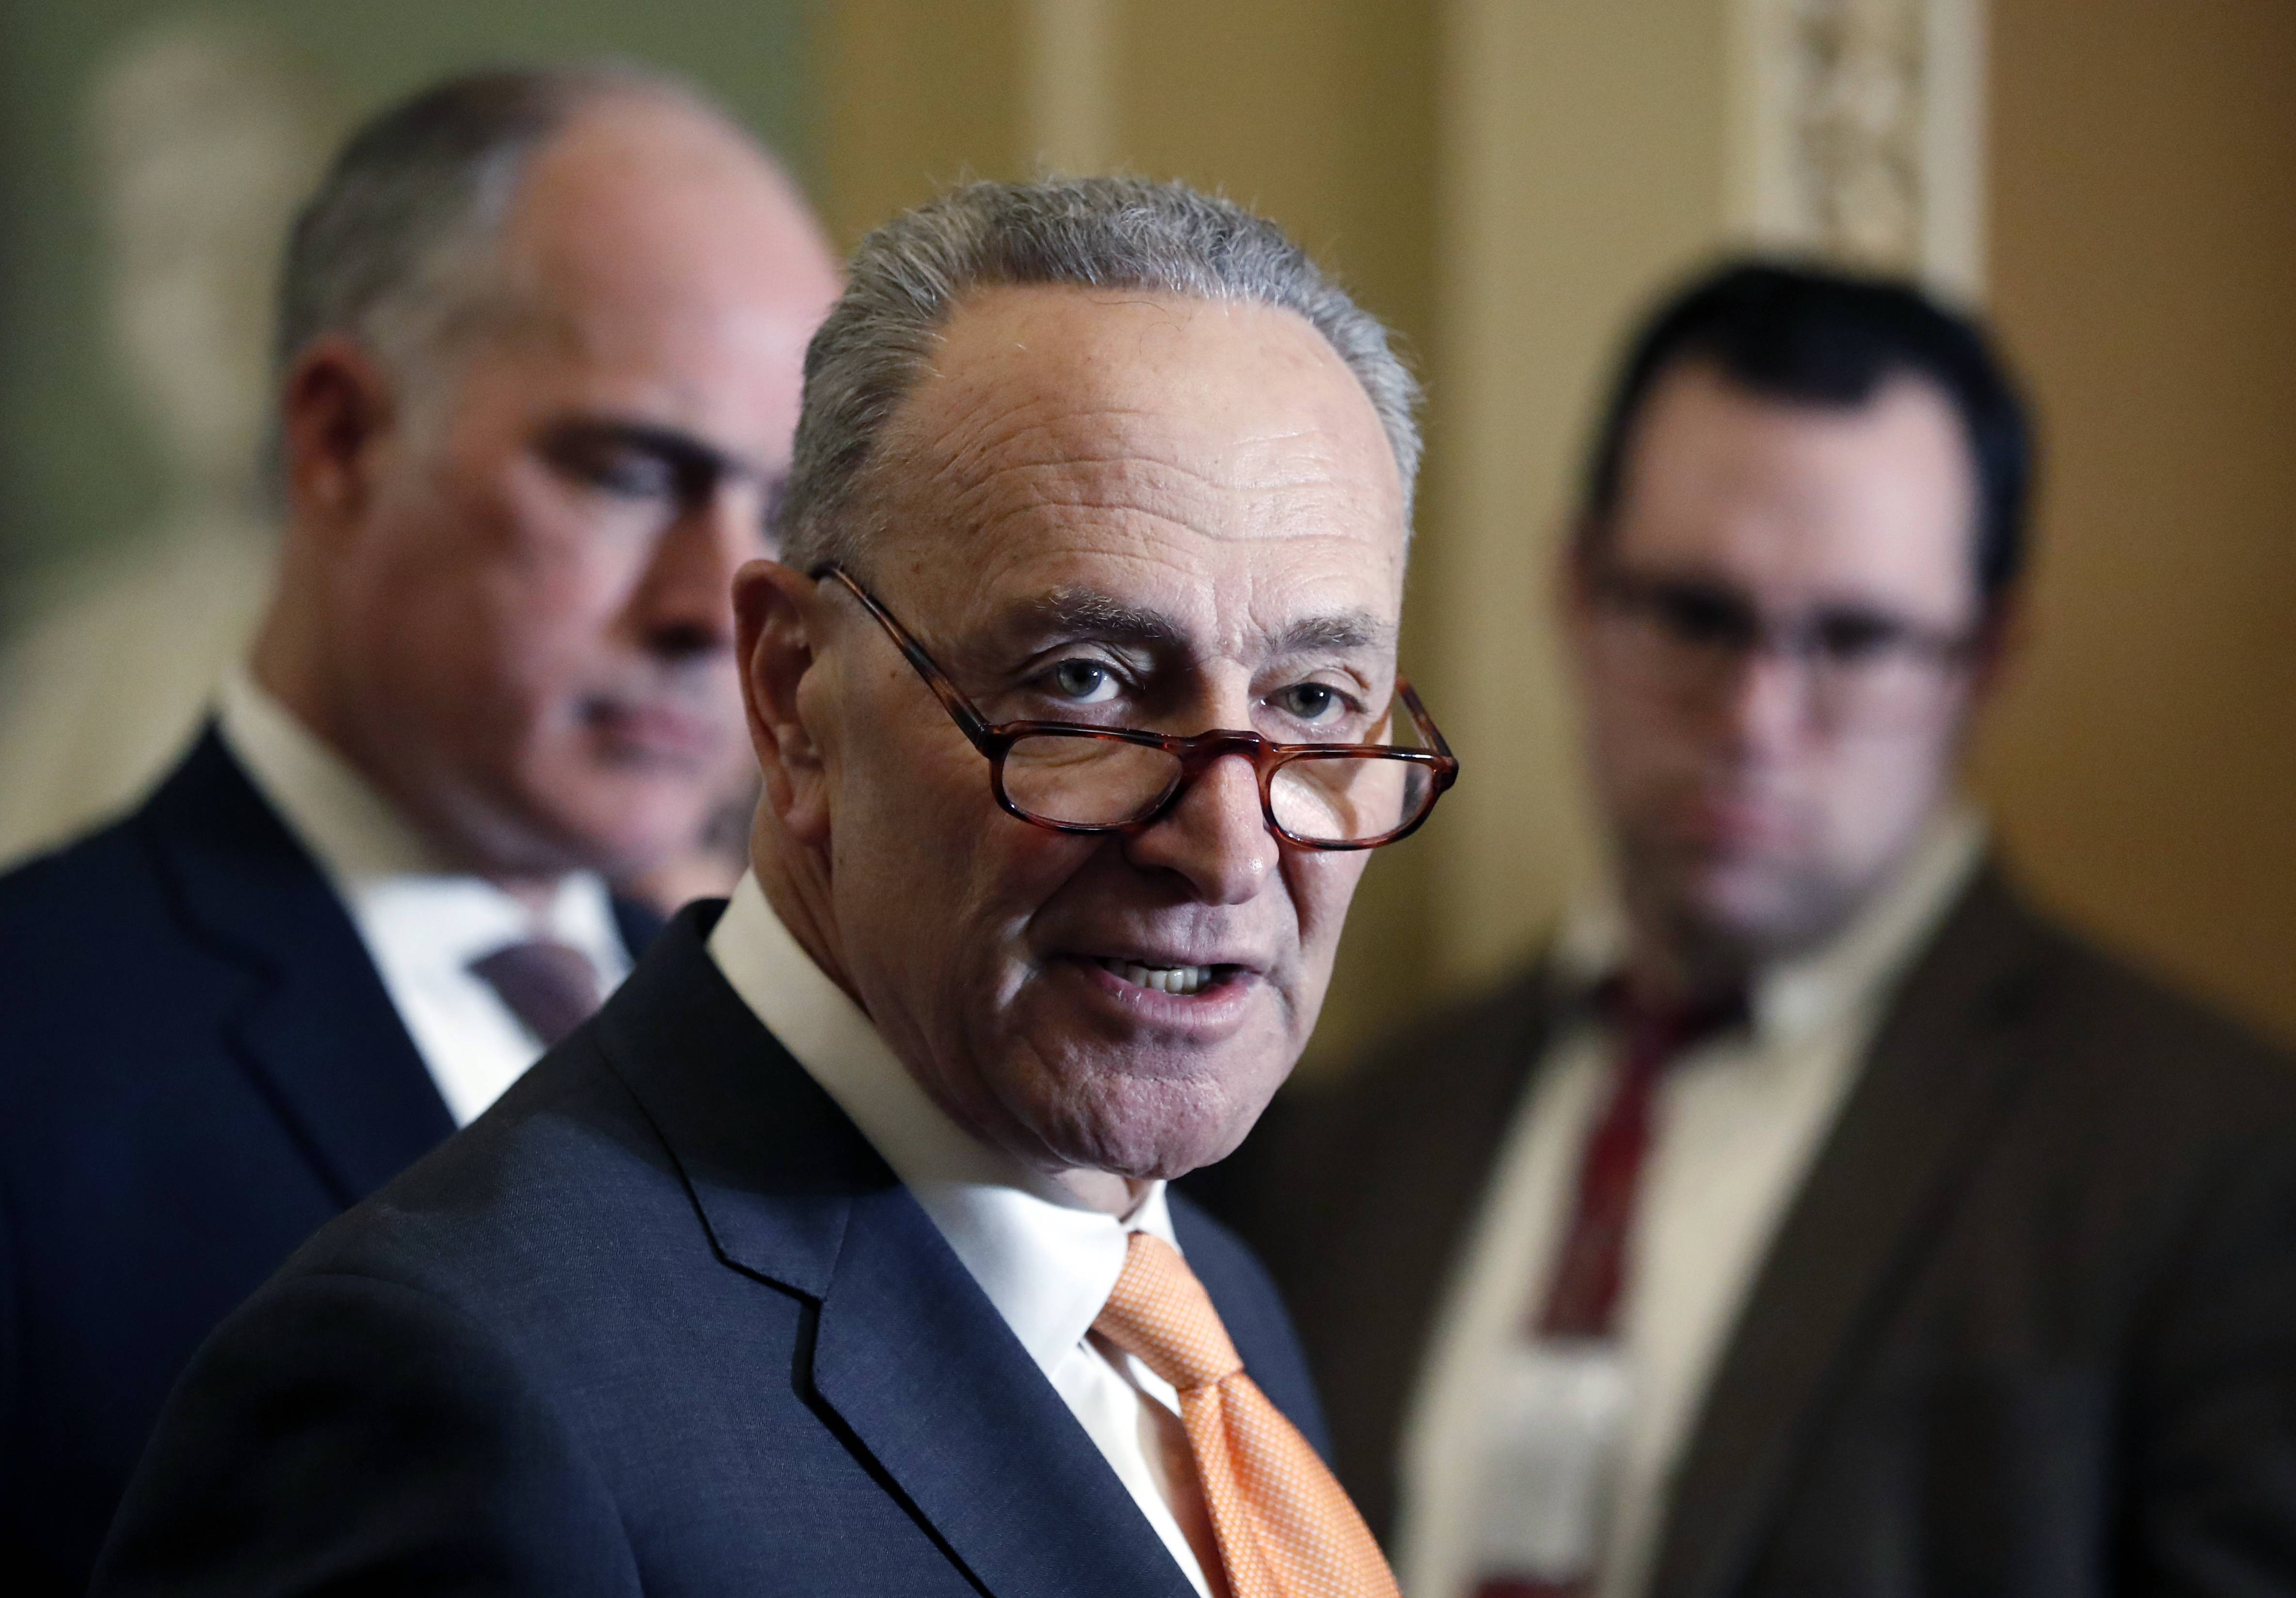 Senate Minority Leader Chuck Schumer of N.Y., center, accompanied by Sen. Bob Casey, D-Pa., at left, speaks on Capitol Hill, Tuesday, Feb. 6, 2018 in Washington.